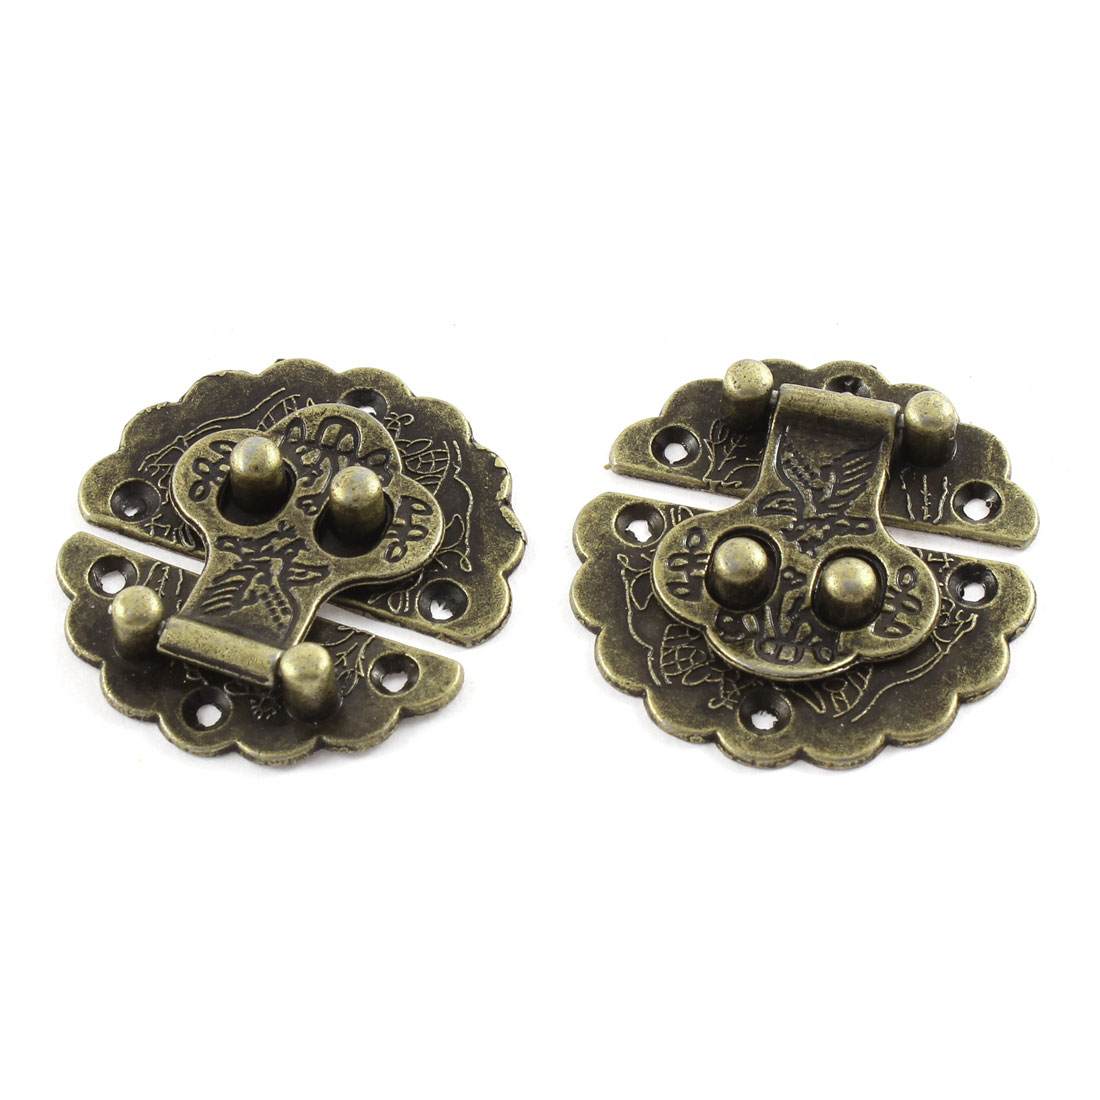 2pcs 40mmx40mm Vintage Style Flower Shape Box Suitcase Toggle Latch Buckles